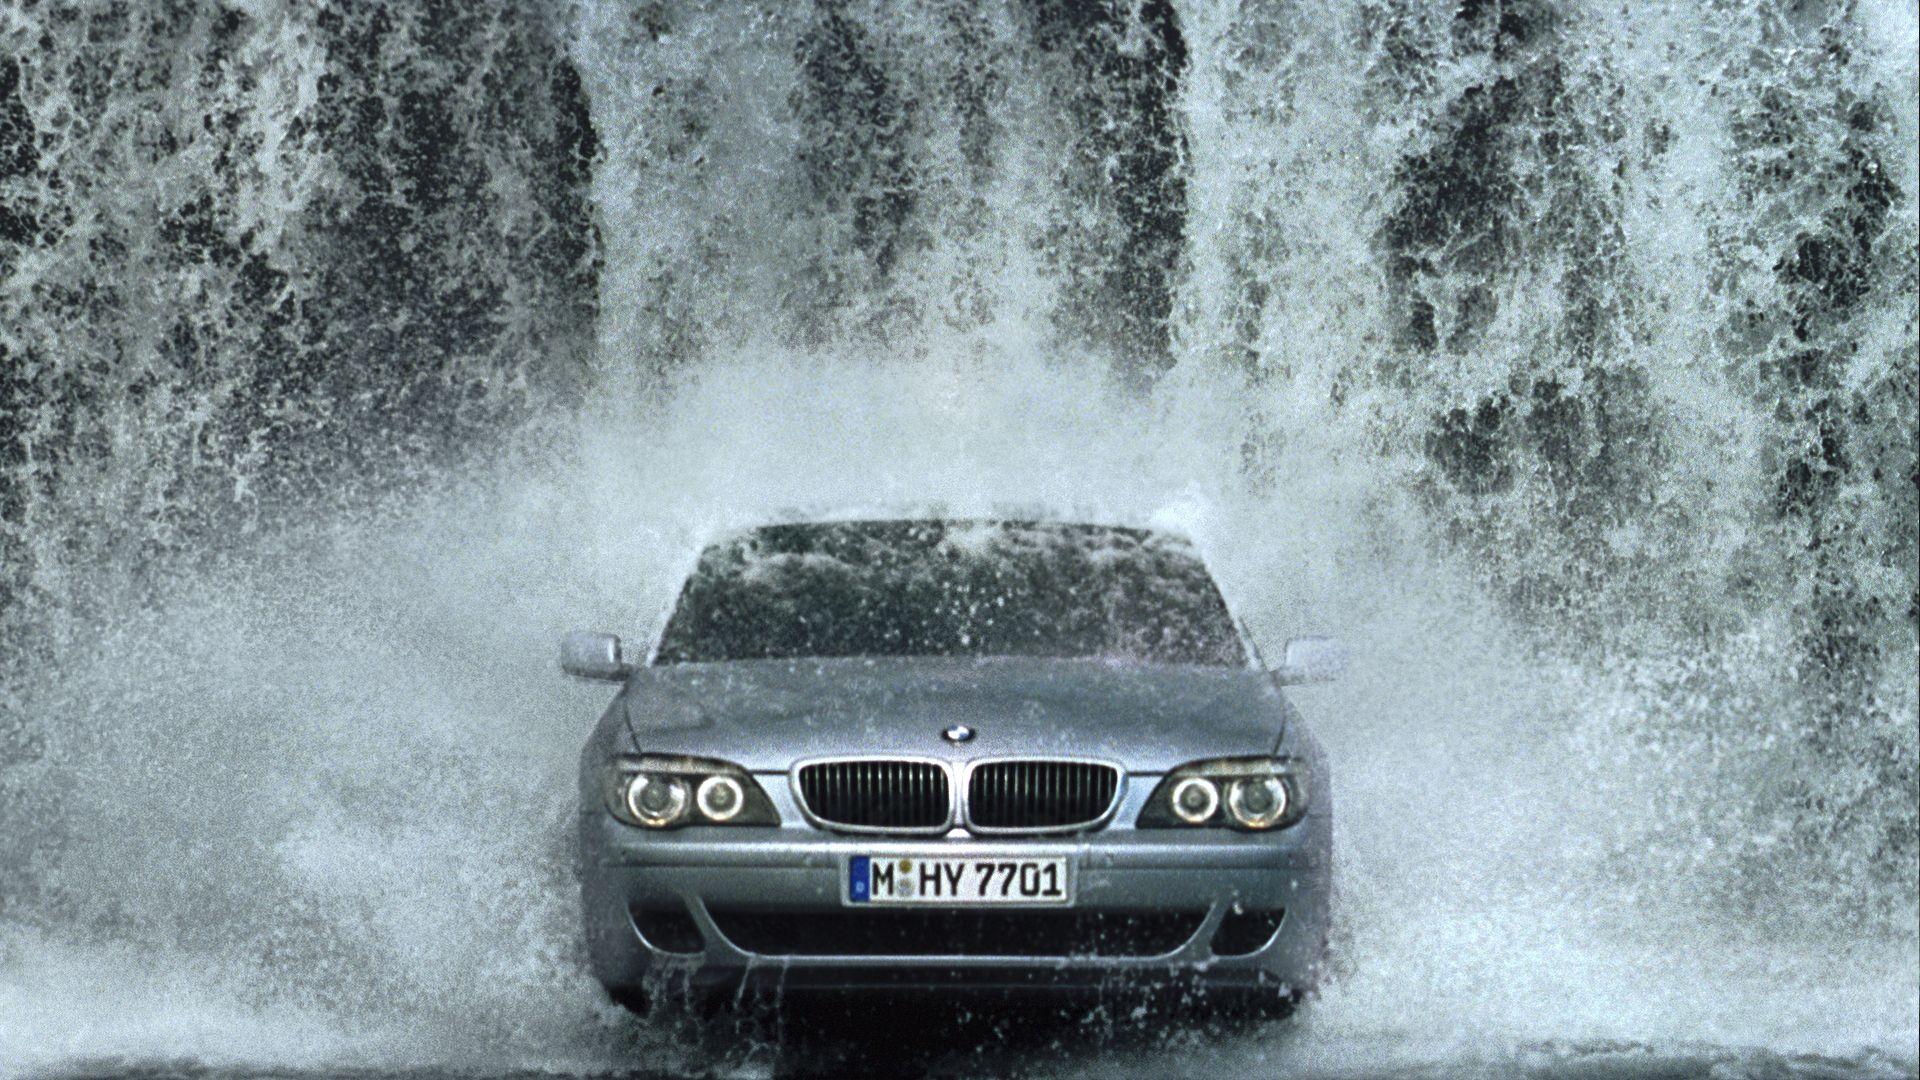 Bmw waterfall cool bmw pictures pinterest bmw car wash and perth hand car wash specializes in providing services like car cleaning car detailing car buffing paint protection truck detailing boat detailing solutioingenieria Images